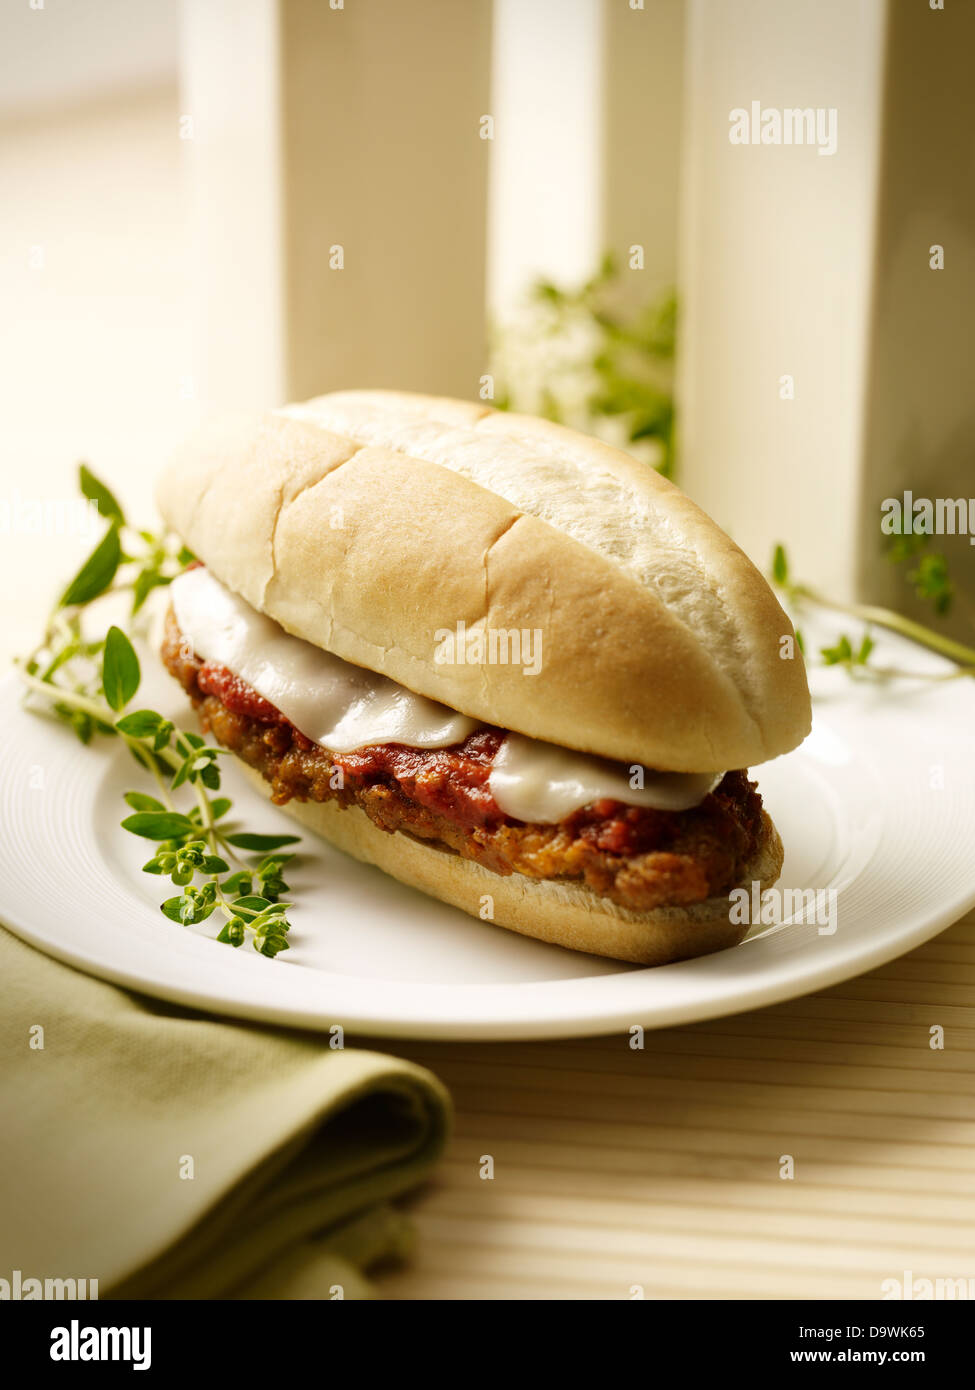 meat ball sandwich - Stock Image